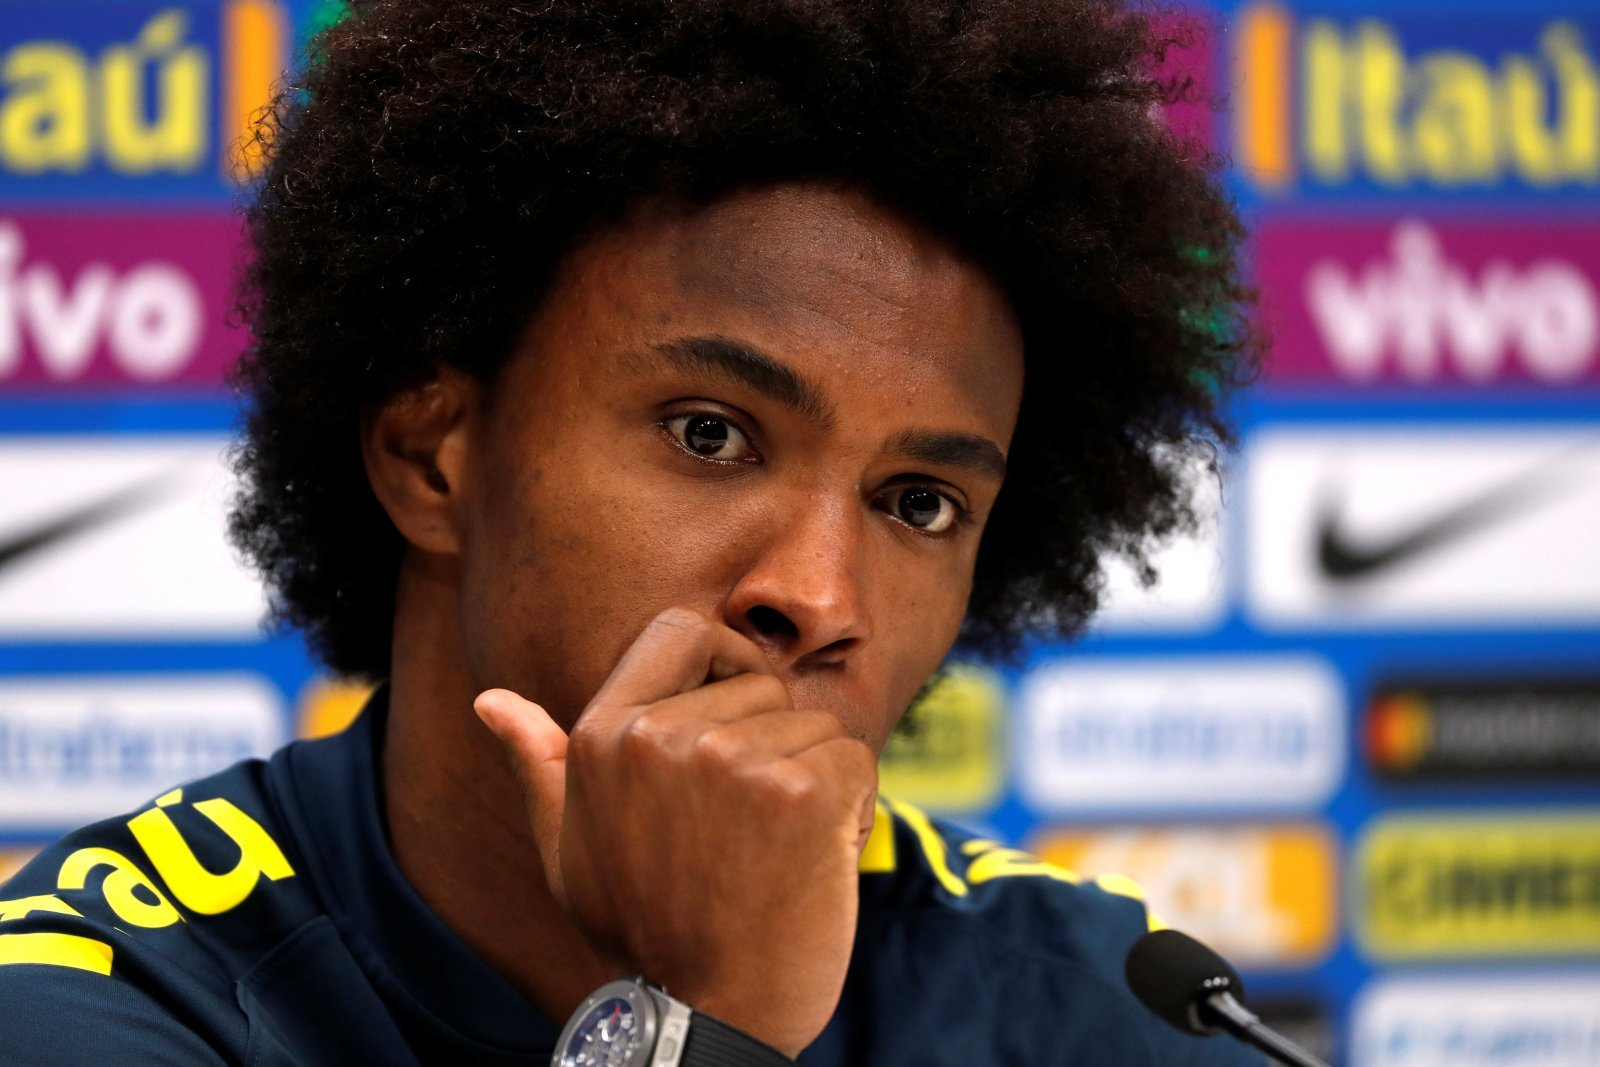 Chelsea fans on Twitter hijack club post to demand Willian departure